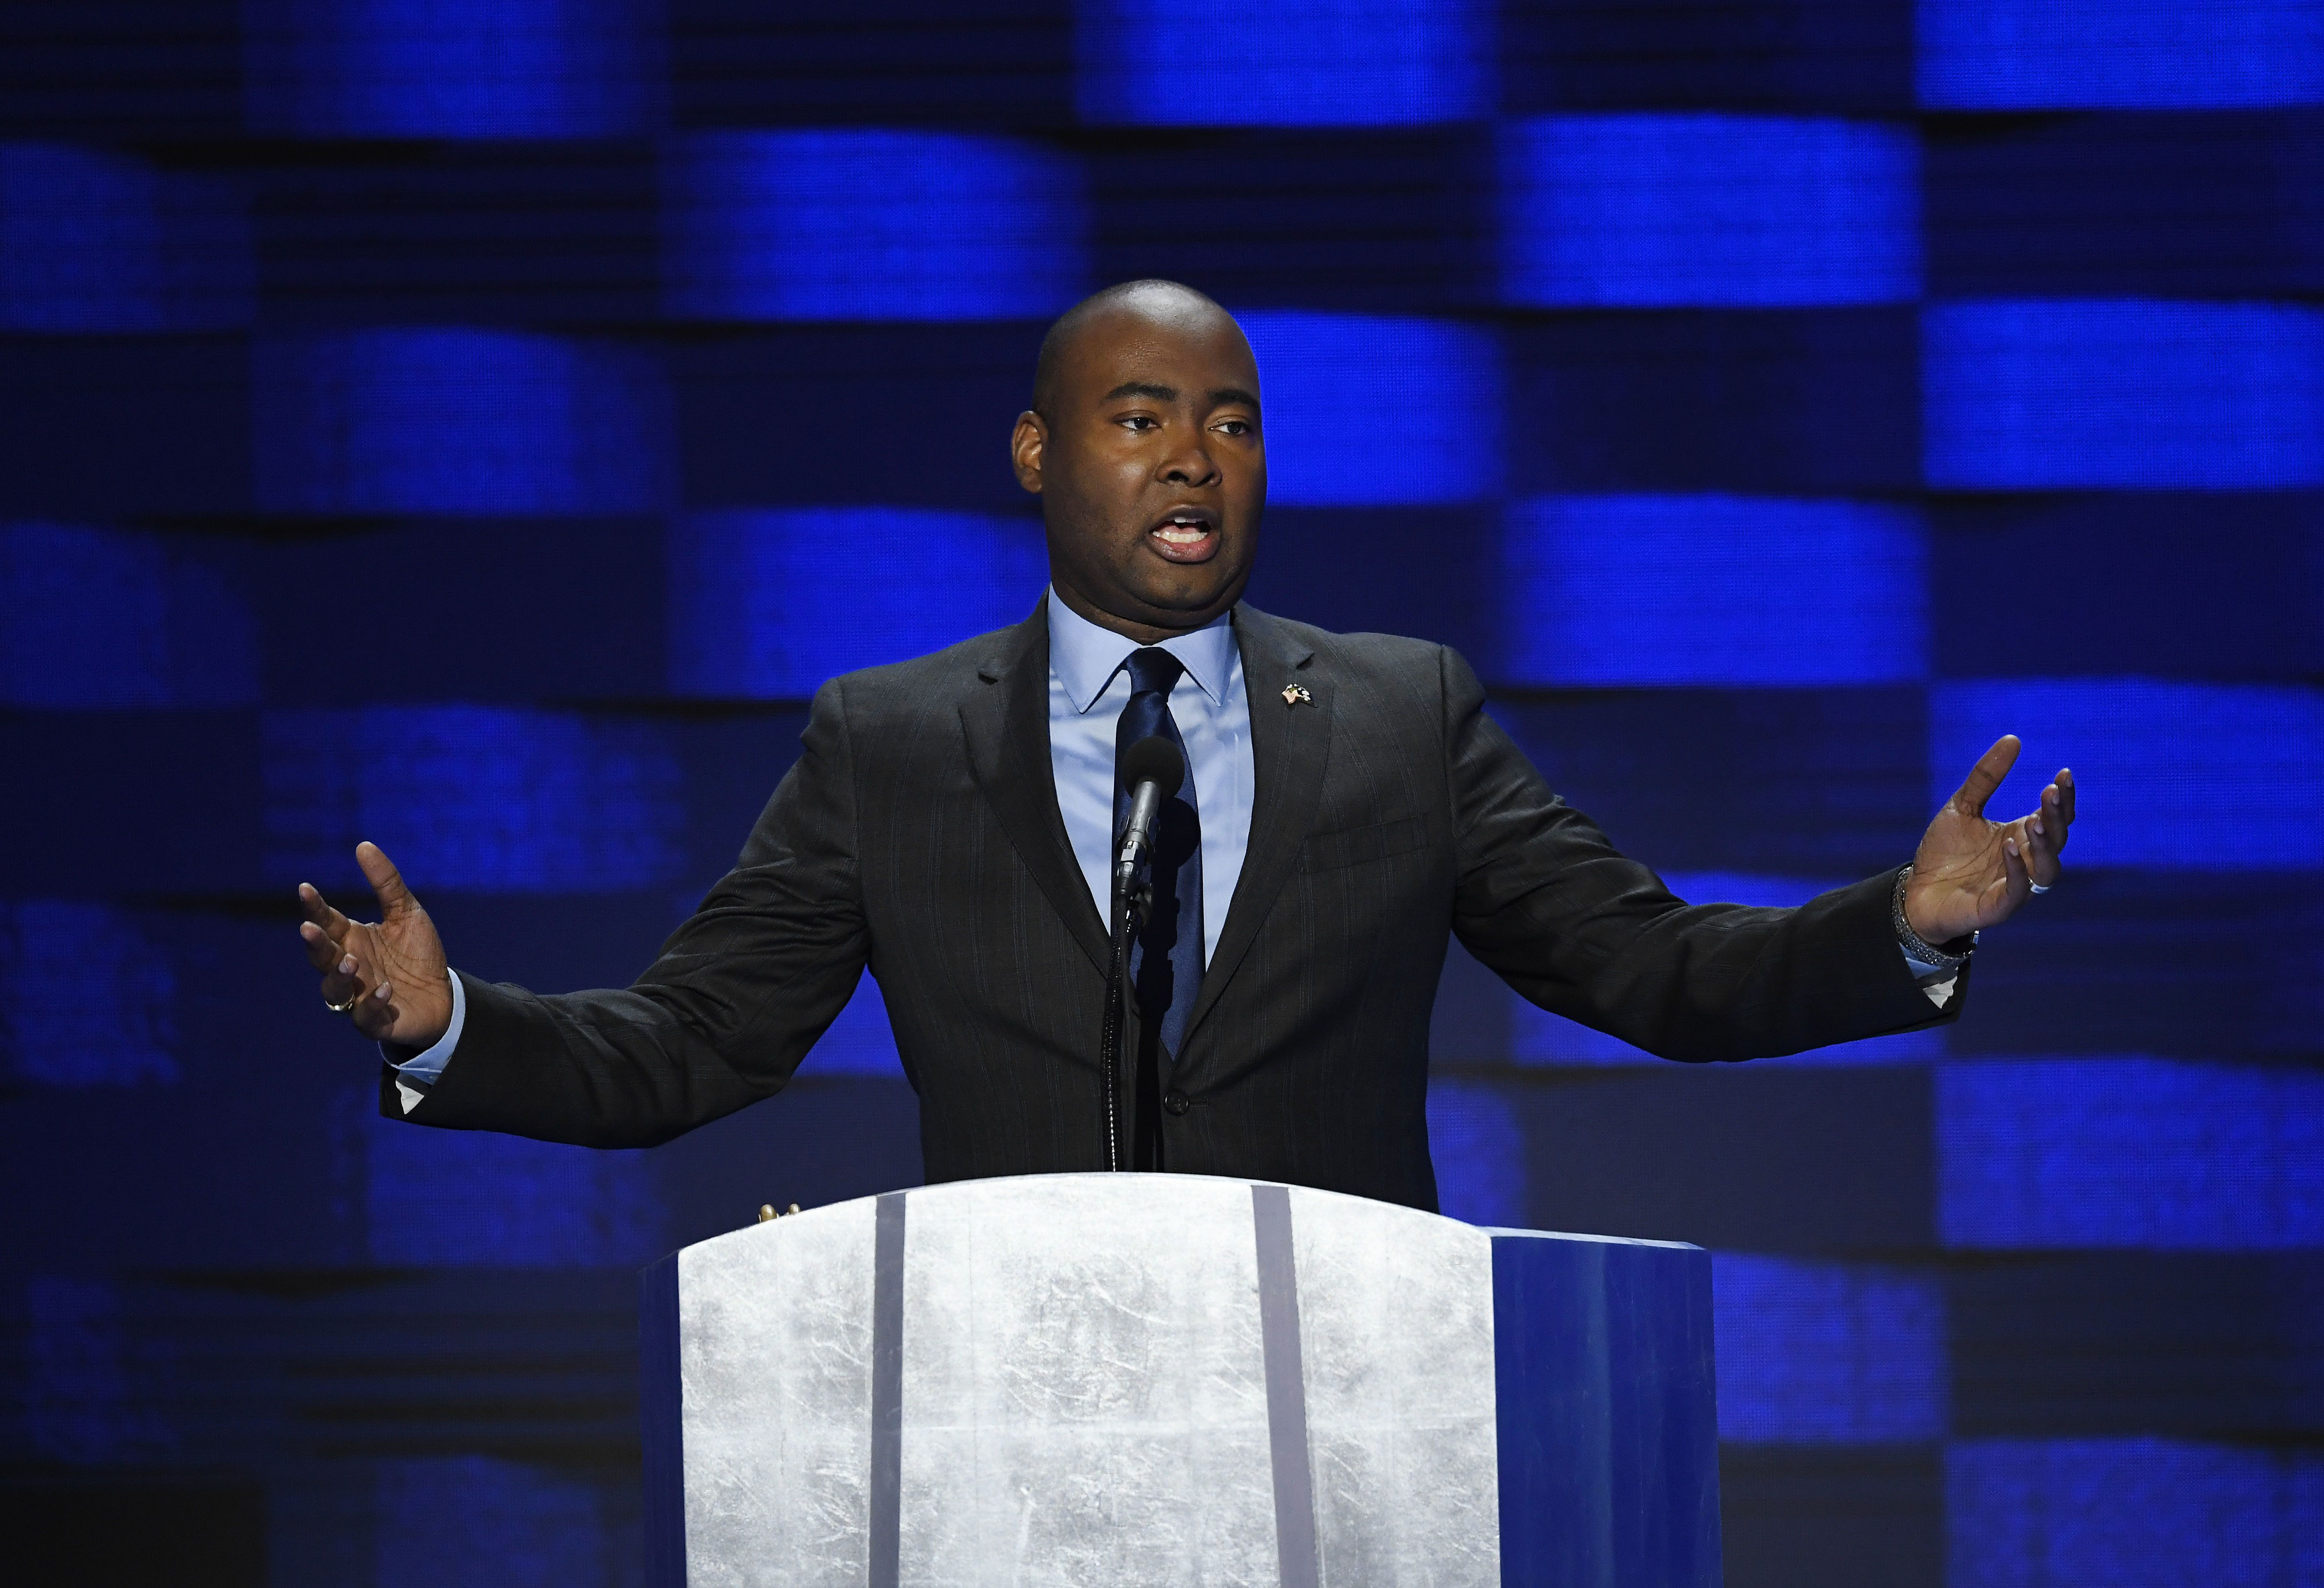 Jaime Harrison speaks durring the Democratic National Convention in Philadelphia on July 28, 2016. Harrison is joining a